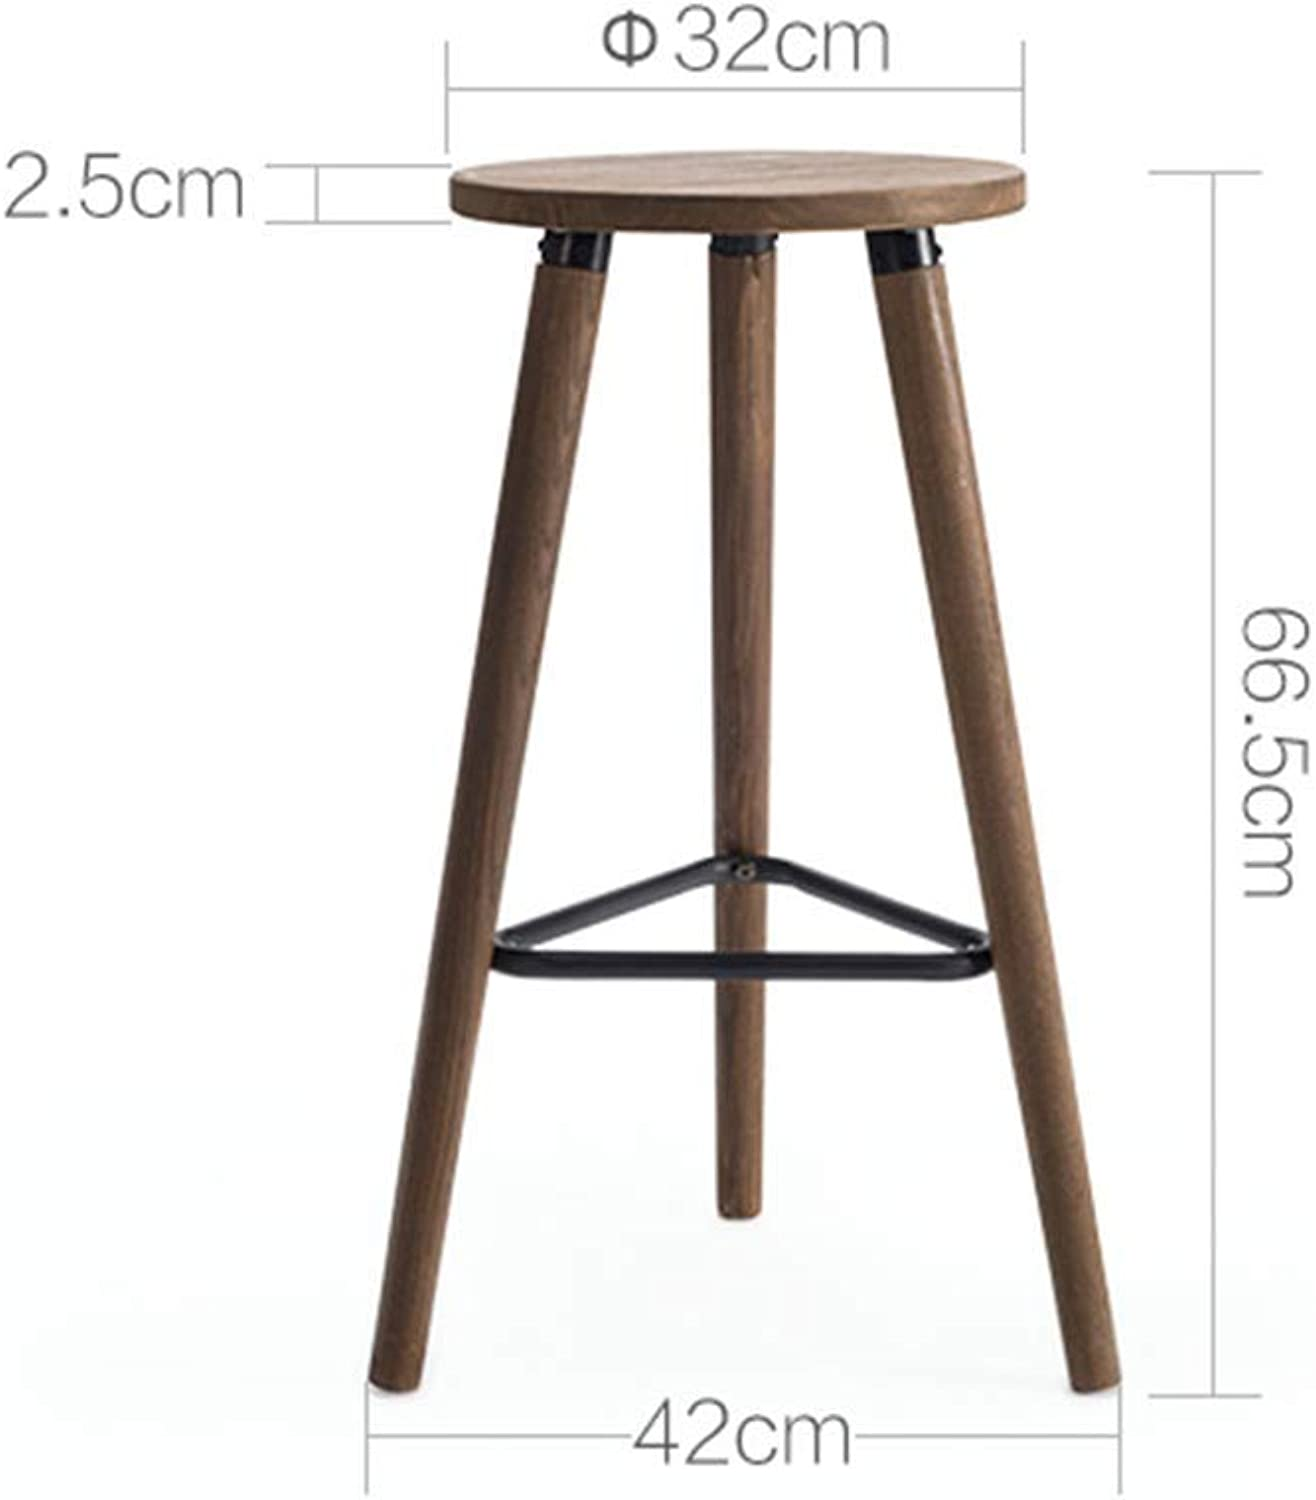 WLG Footstool, shoes Bench, Sofa Bench, Creative Wrought Iron round MultiFunction Stool